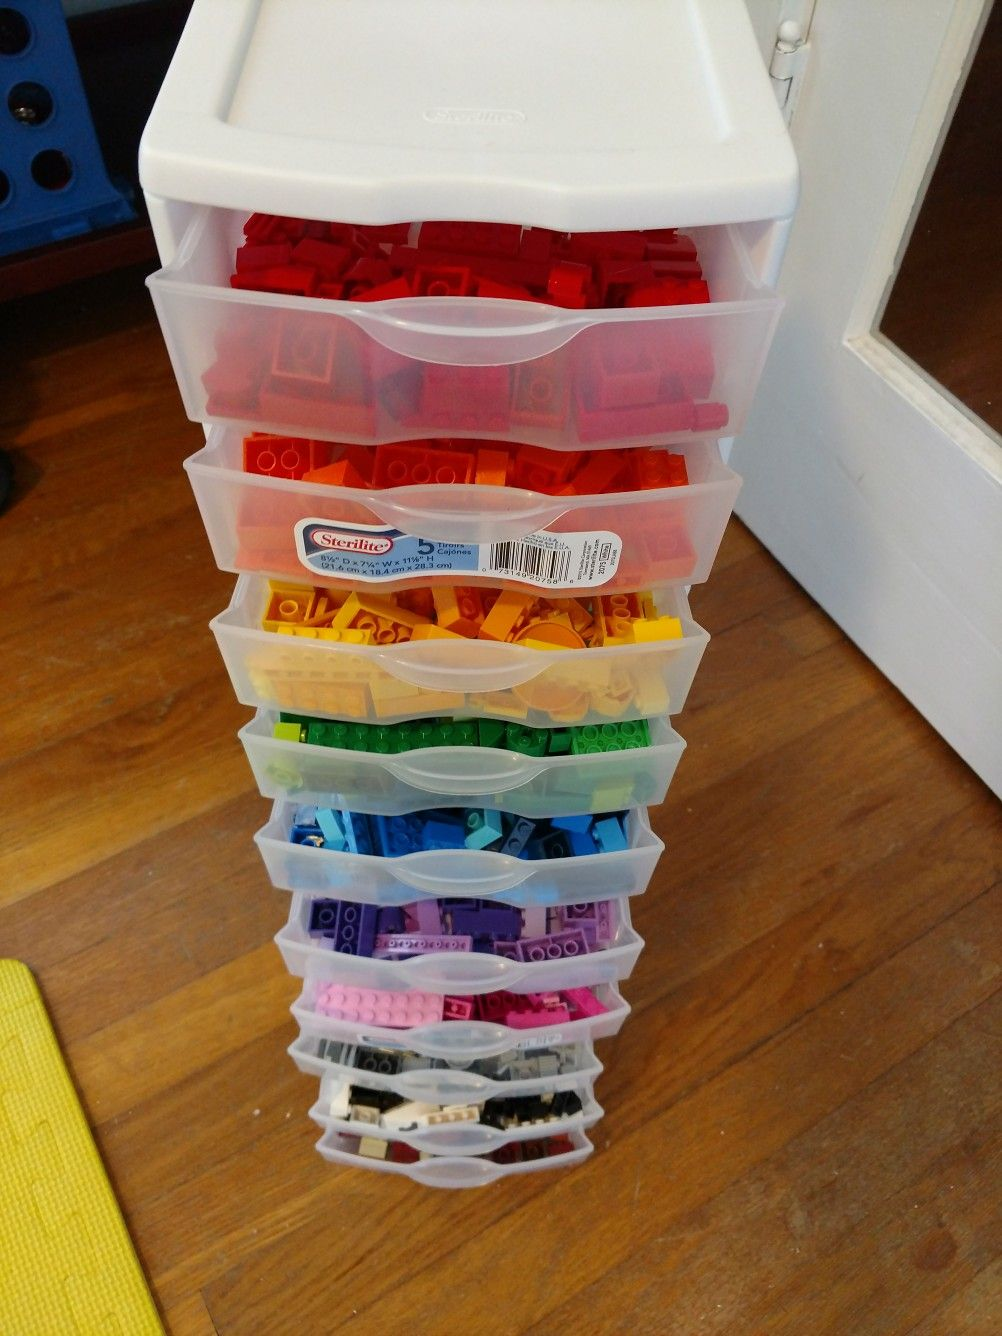 Easy $15 Lego Storage. Two, five drawer Sterilite Storage Containers  stacked together using a hot glue gun. Holds 2,000+ Legos.